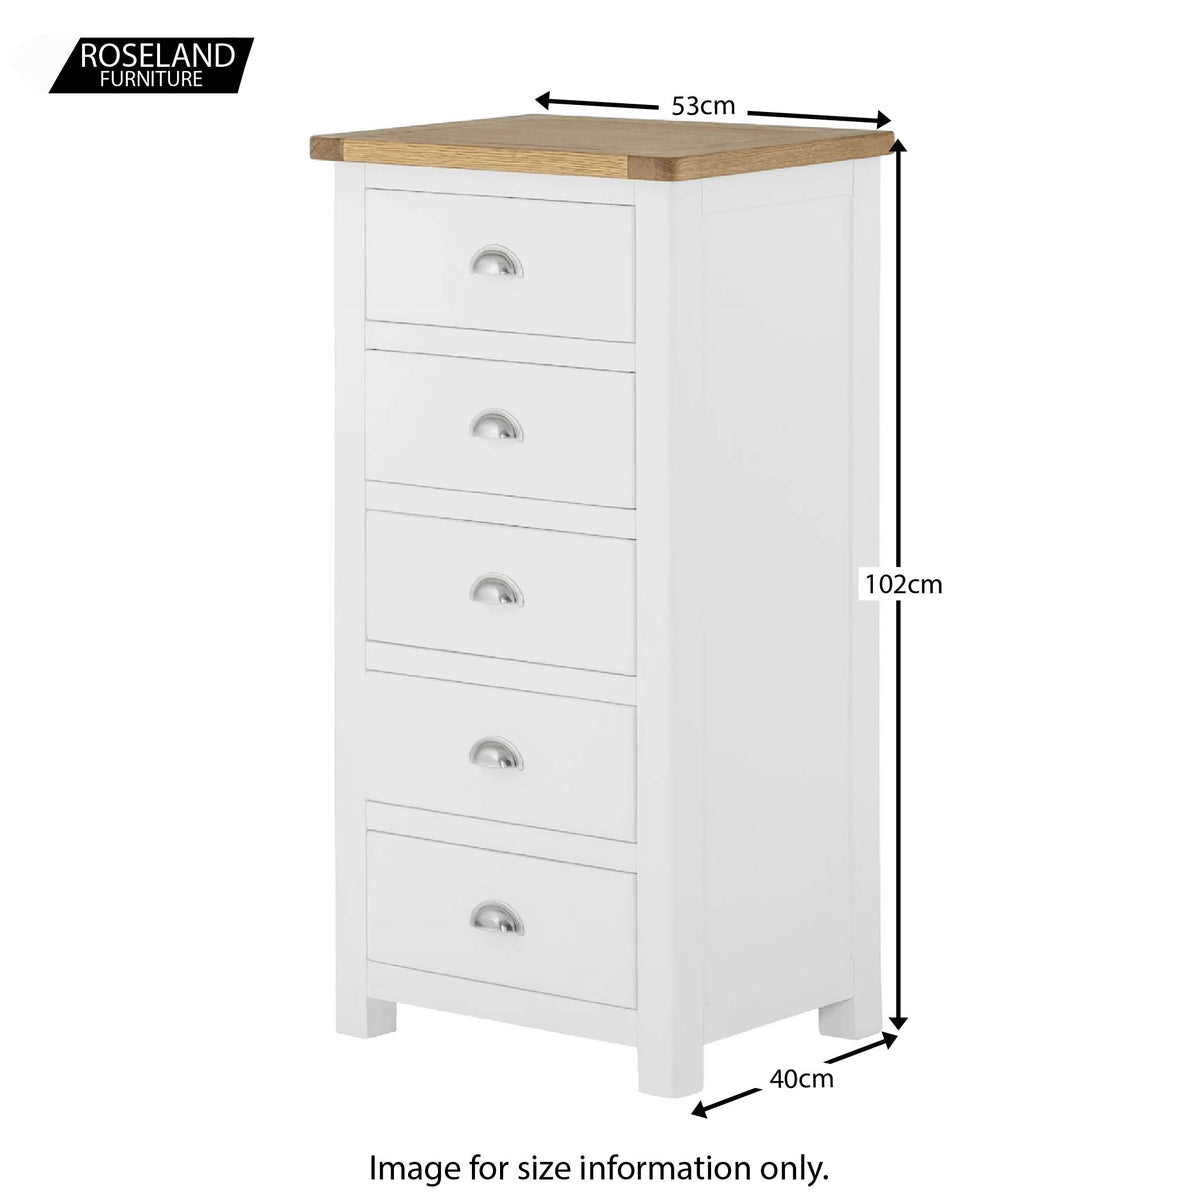 Padstow White Tallboy Chest of Drawers - Size Guide